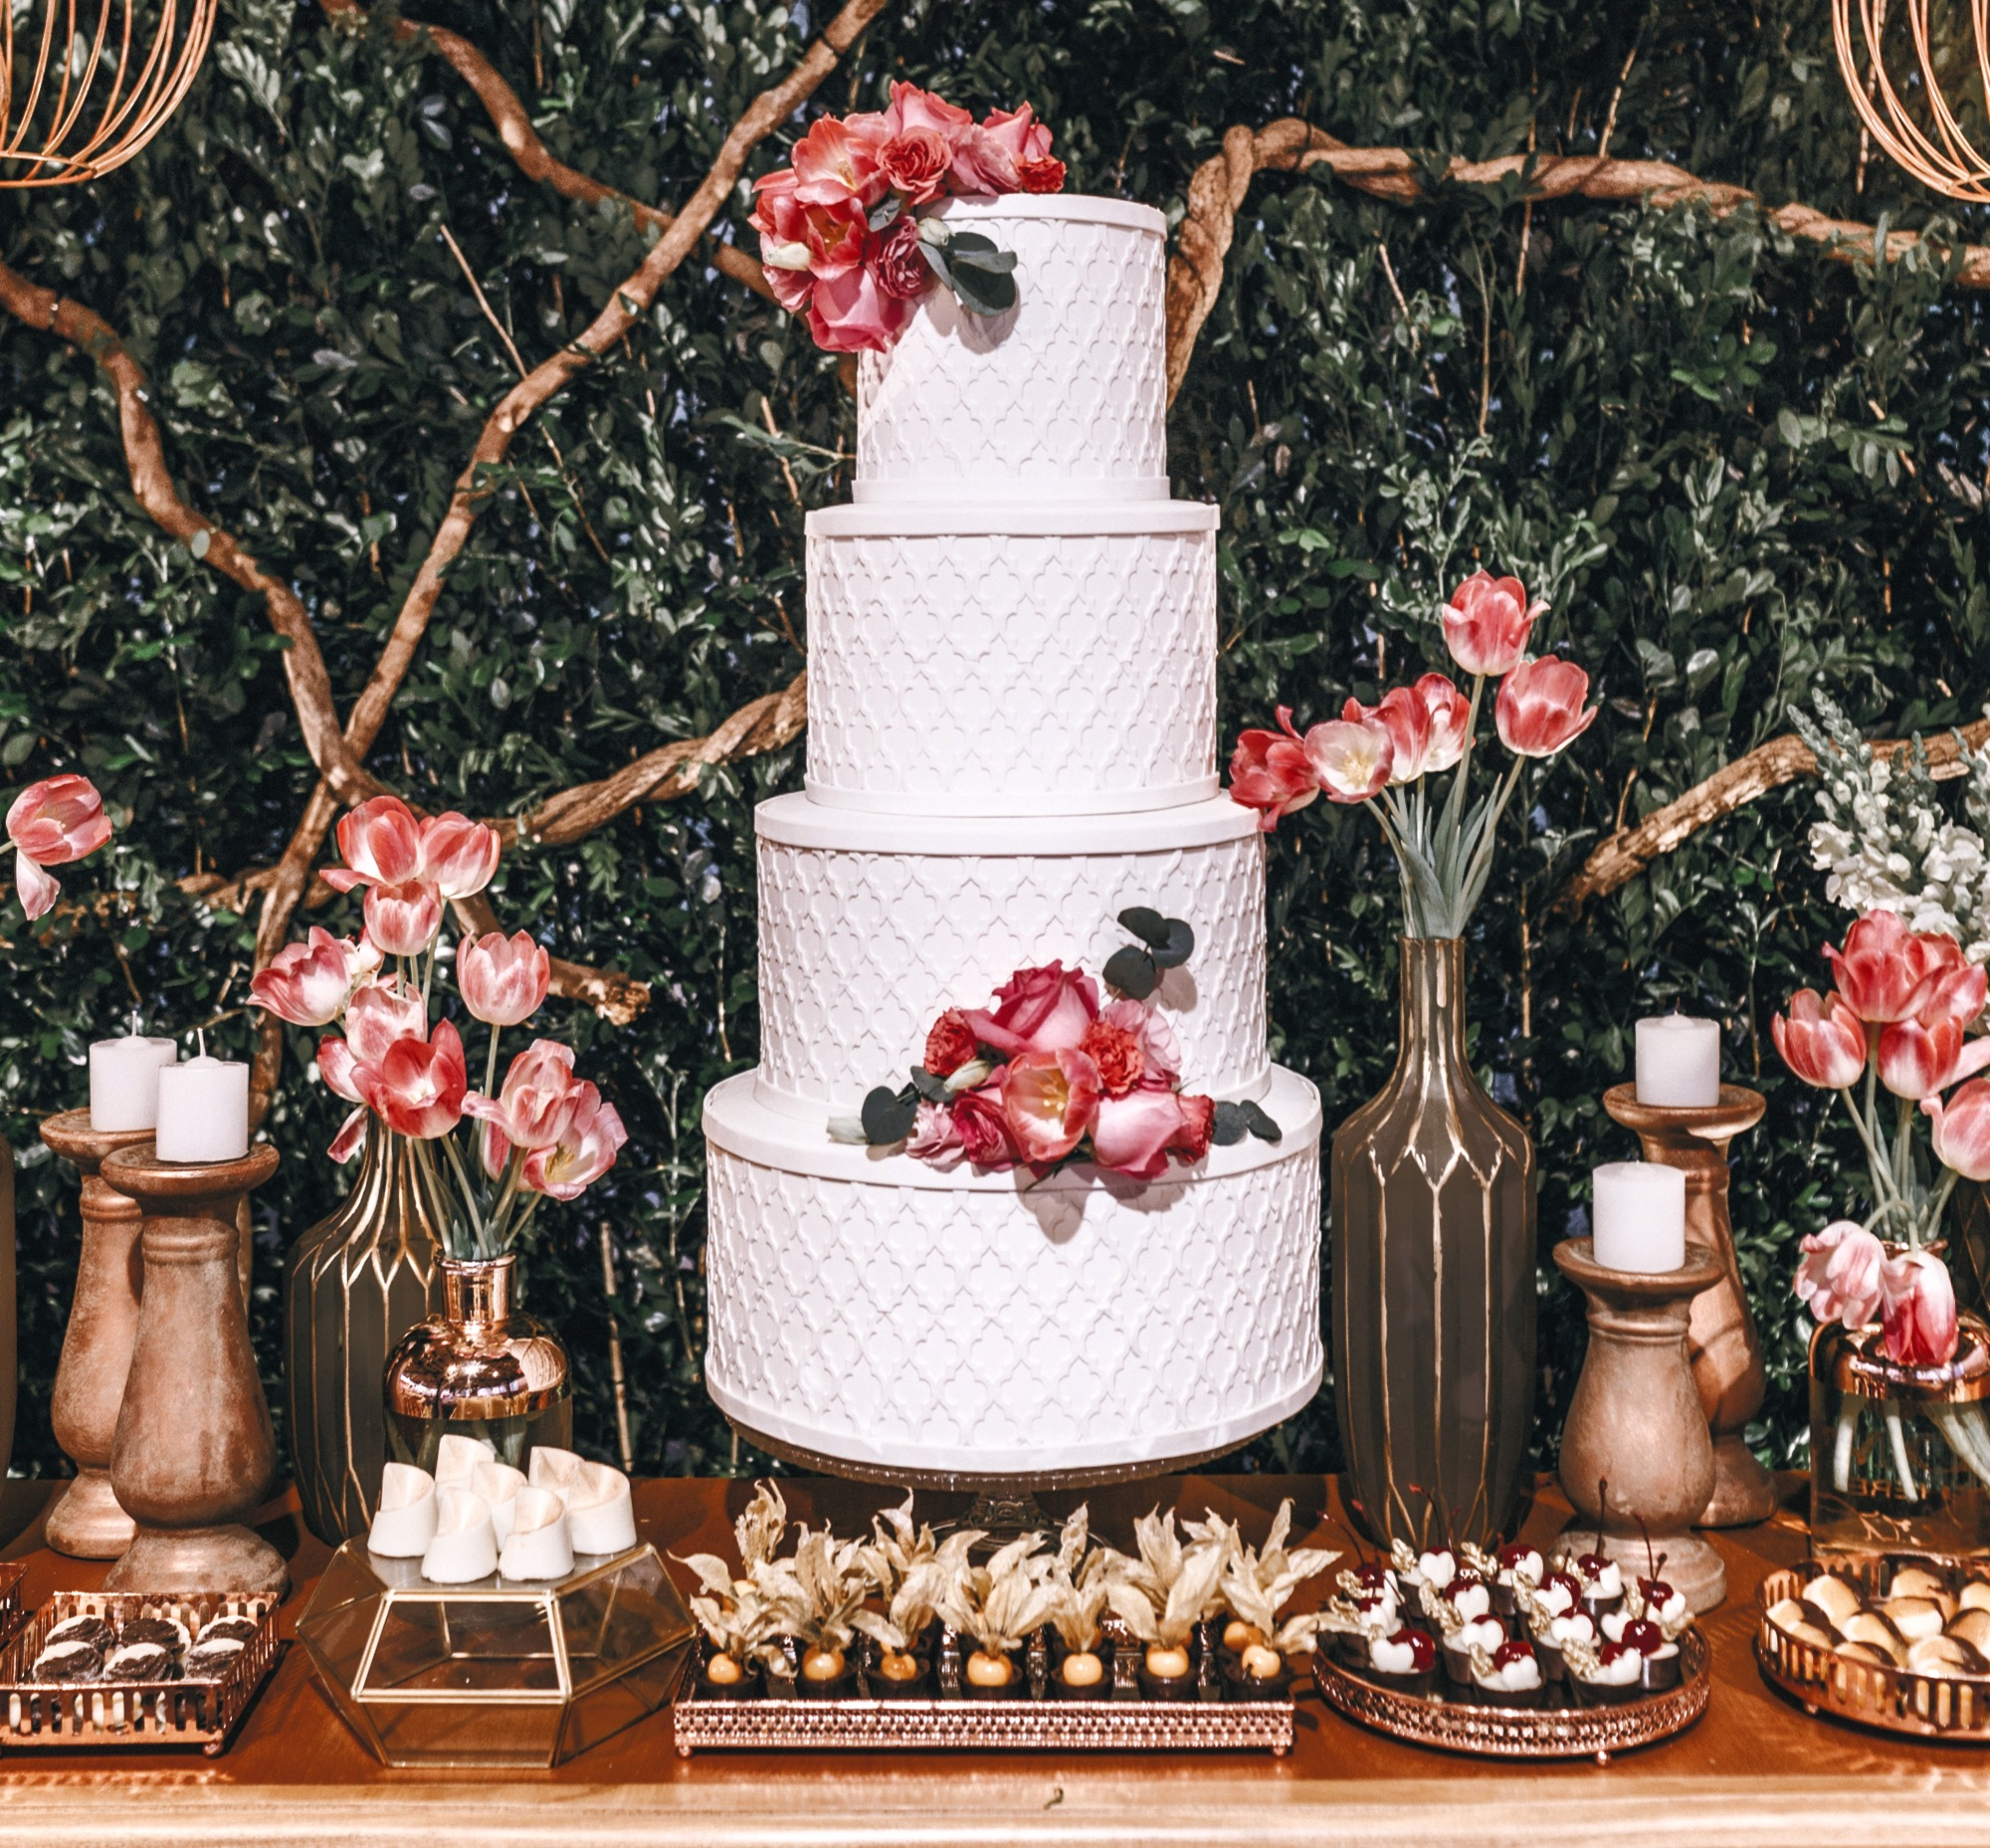 Four tier wedding cake with dessert table